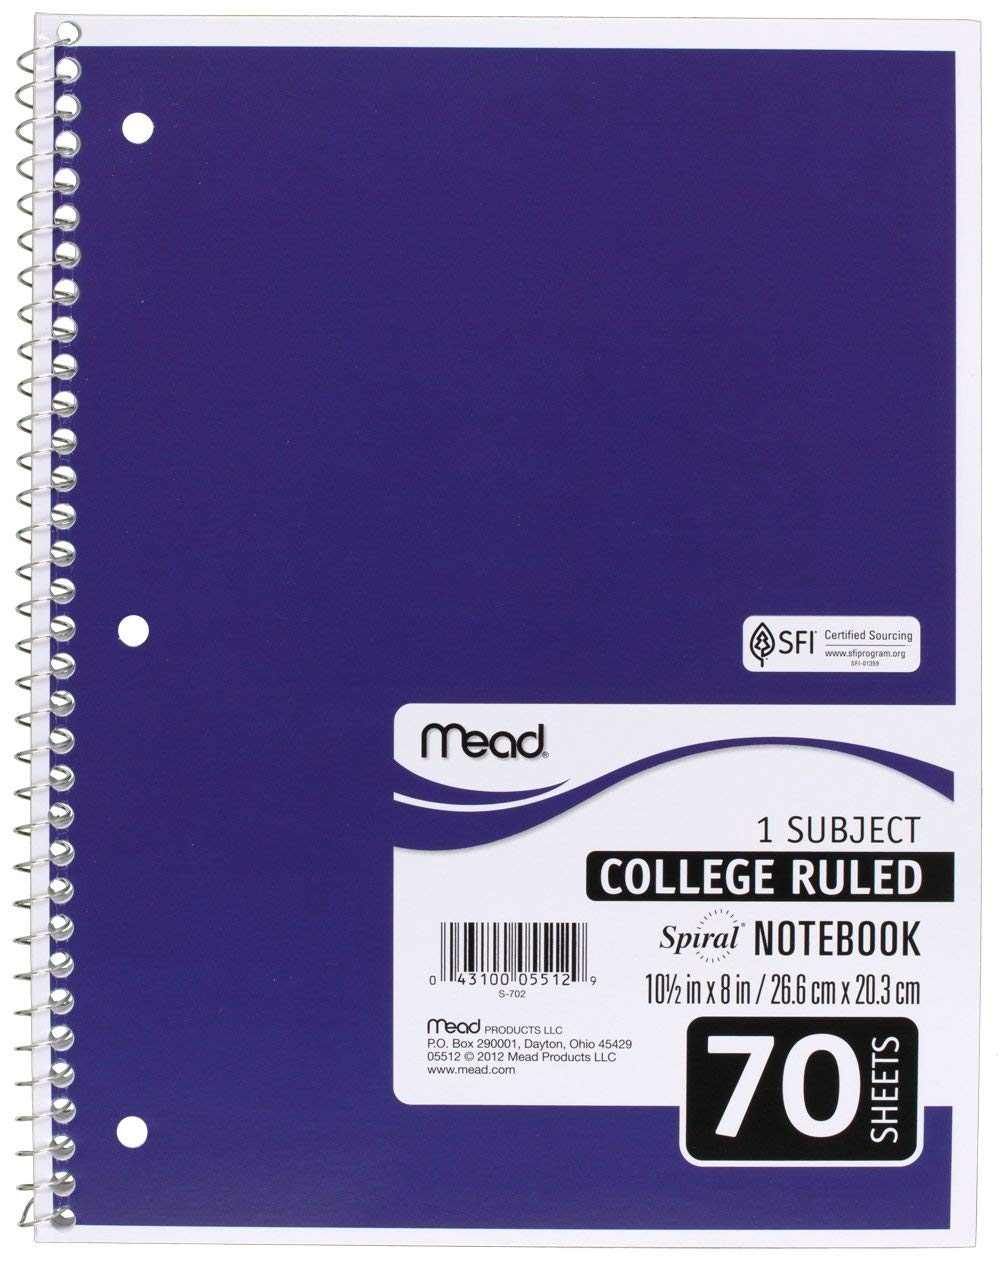 Mead SLTYGJHJ Spiral Notebooks, 1 Subject, College Ruled Paper, 70 Sheets, 10-1/2'' x 7-1/2'', Assorted Colors, 6 Pack (73065) 36 Pack by Mead (Image #6)